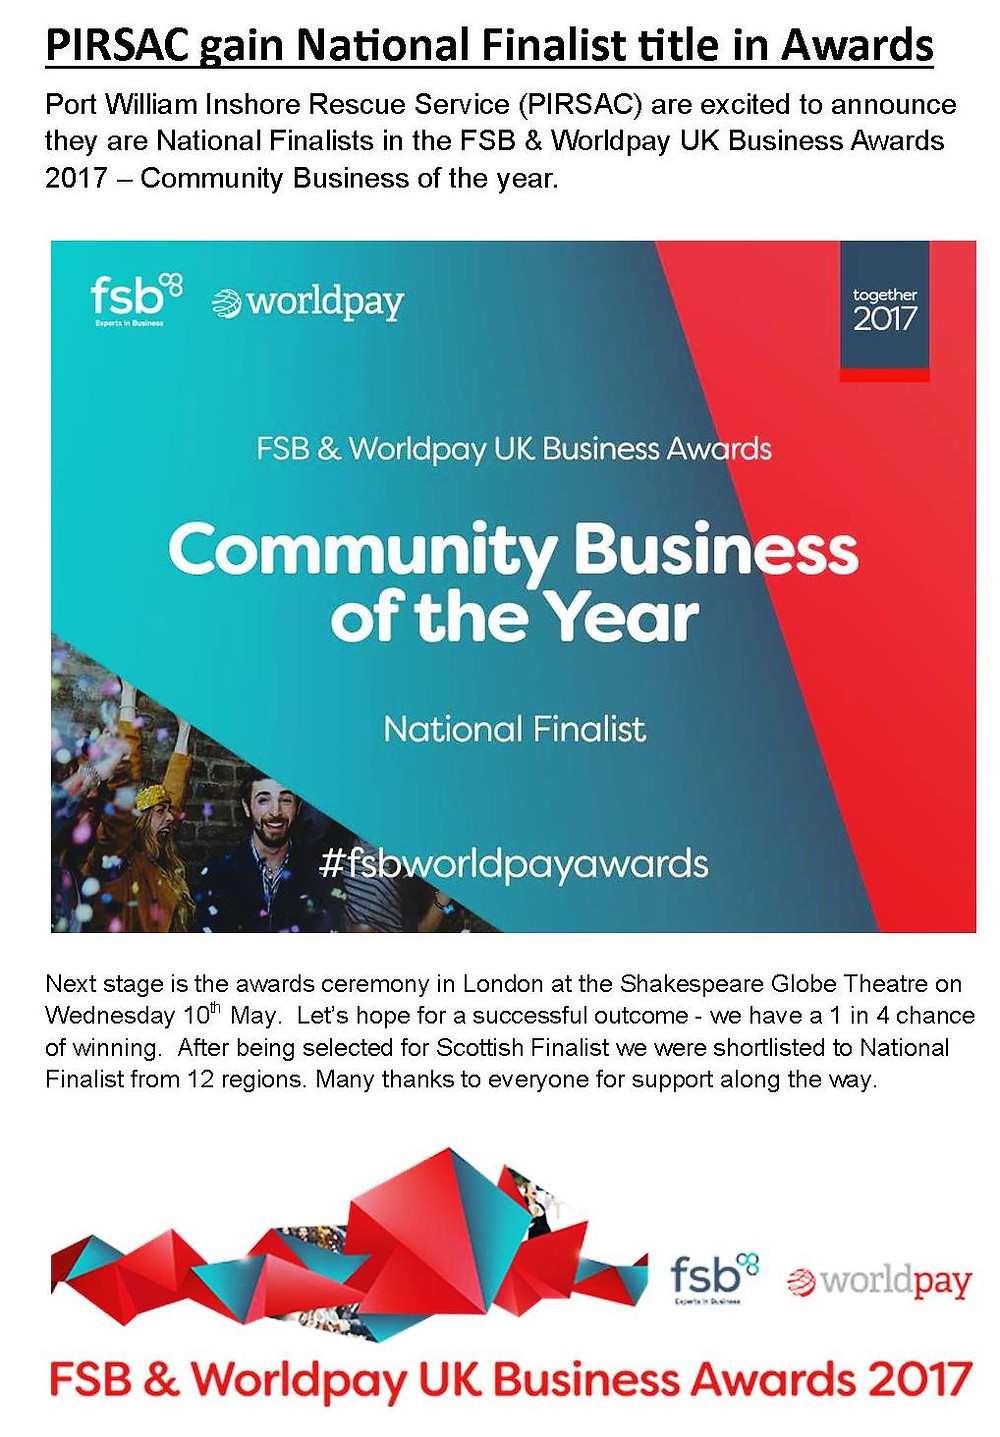 lots more info on the FSB website - http://www.fsb.org.uk/events/fsb-worldpay-uk-business-awards-2017